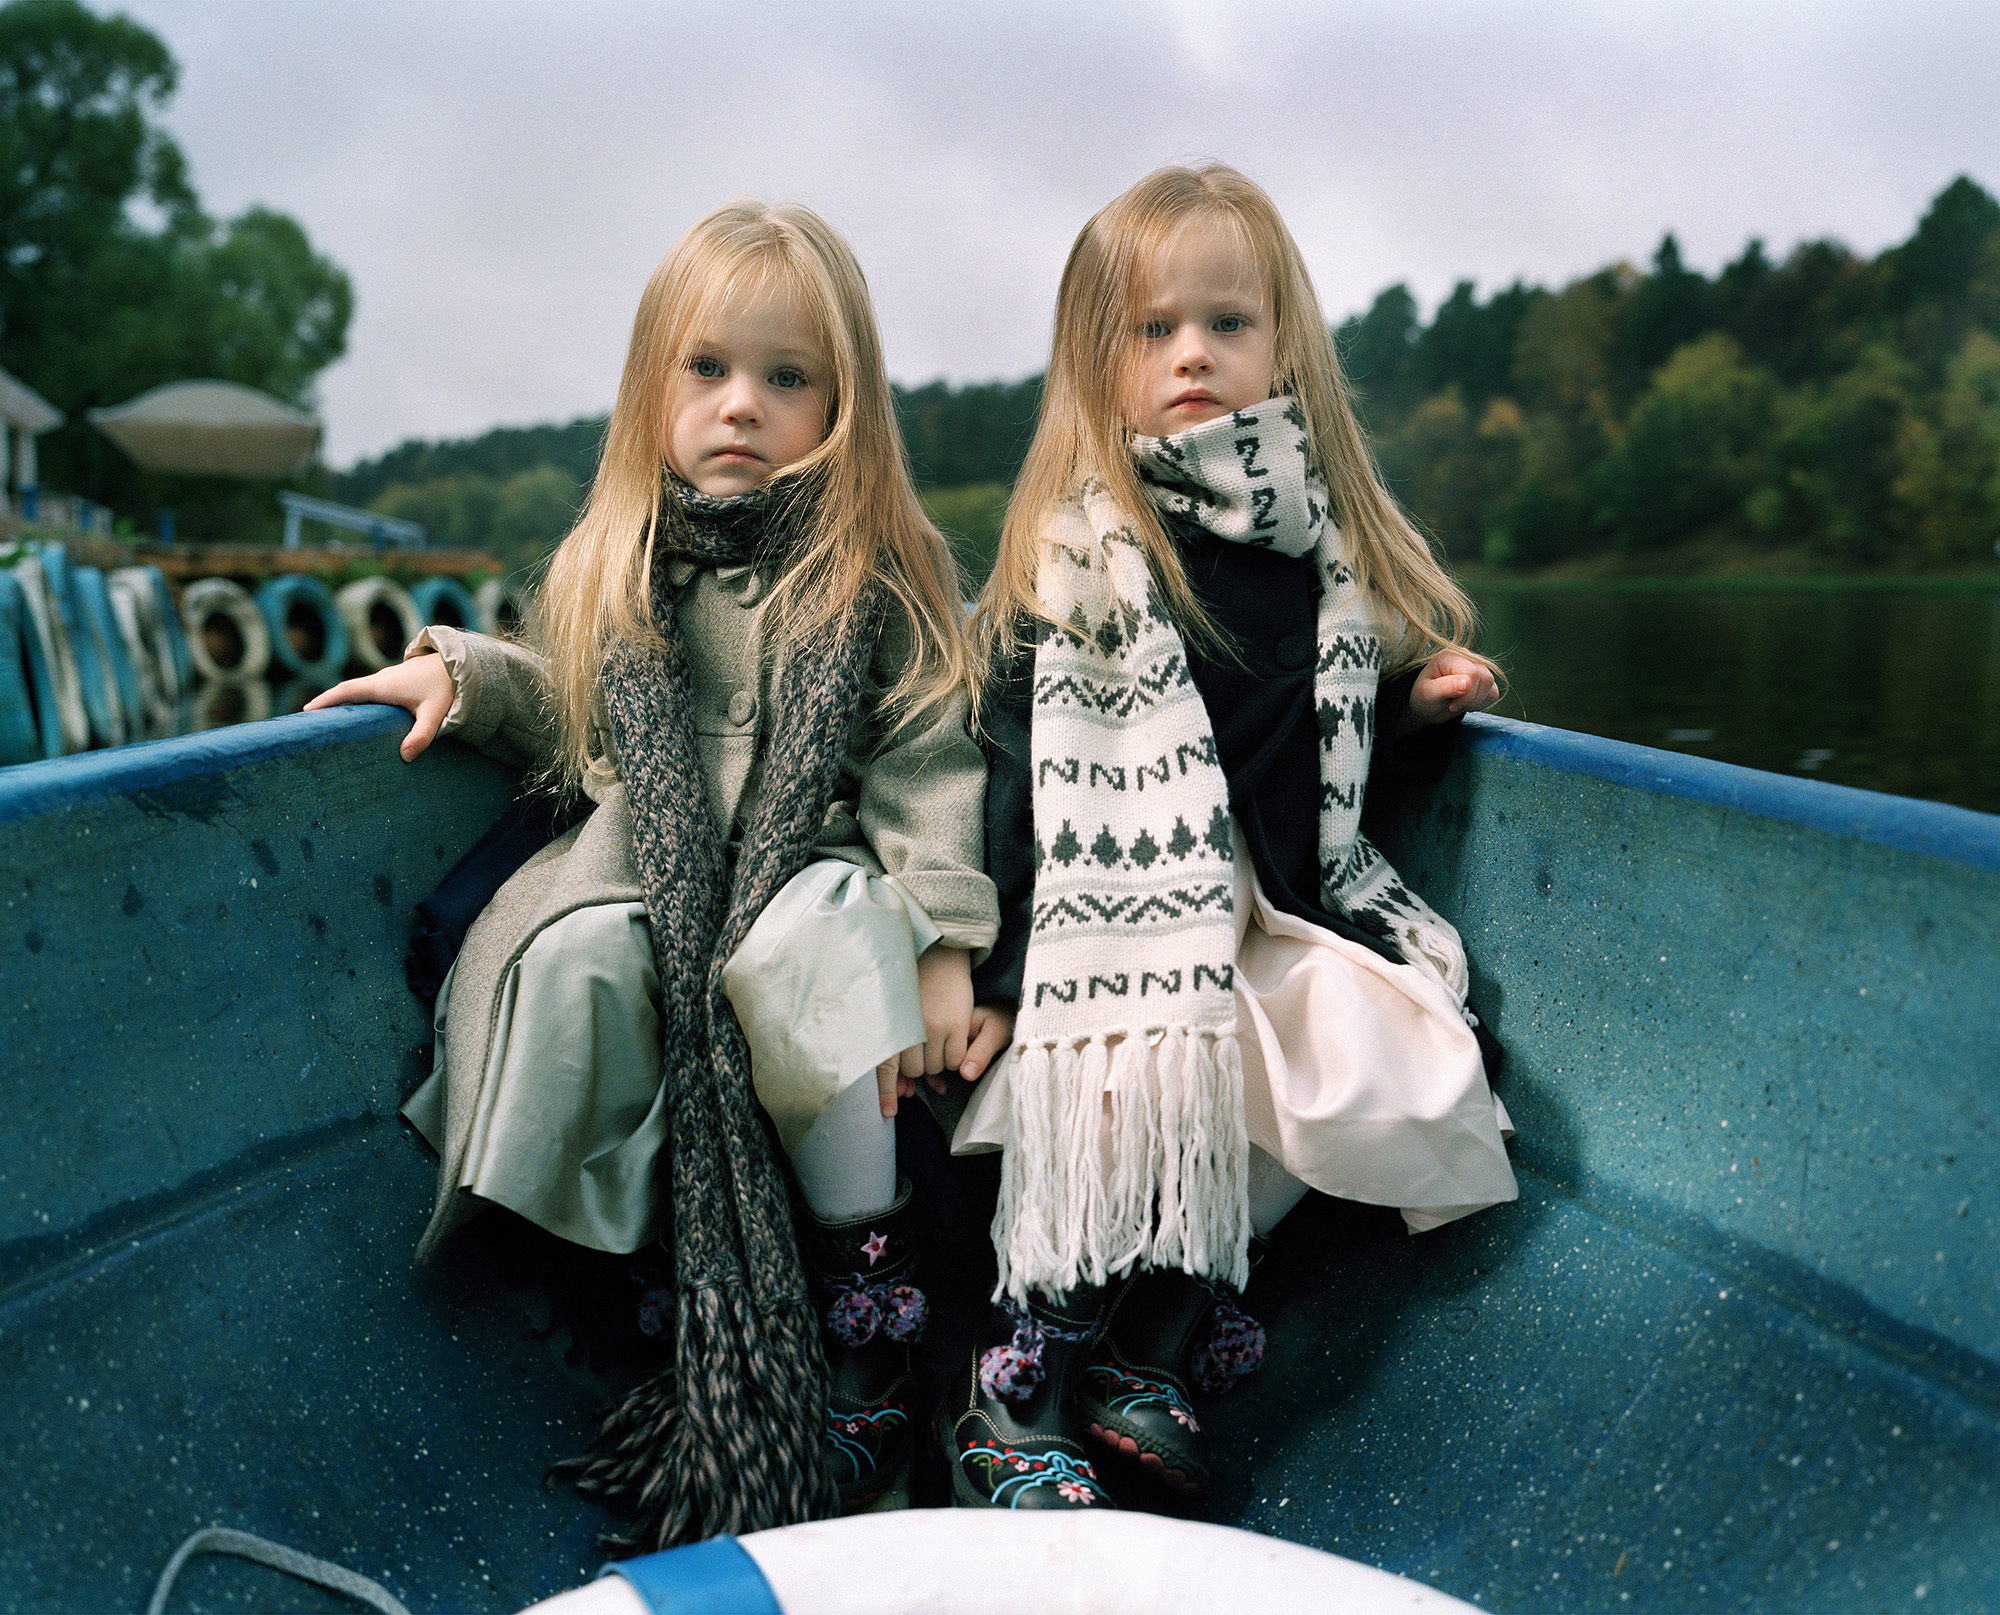 Ilona and Ella on a Rowing Boat, Moscow 2009